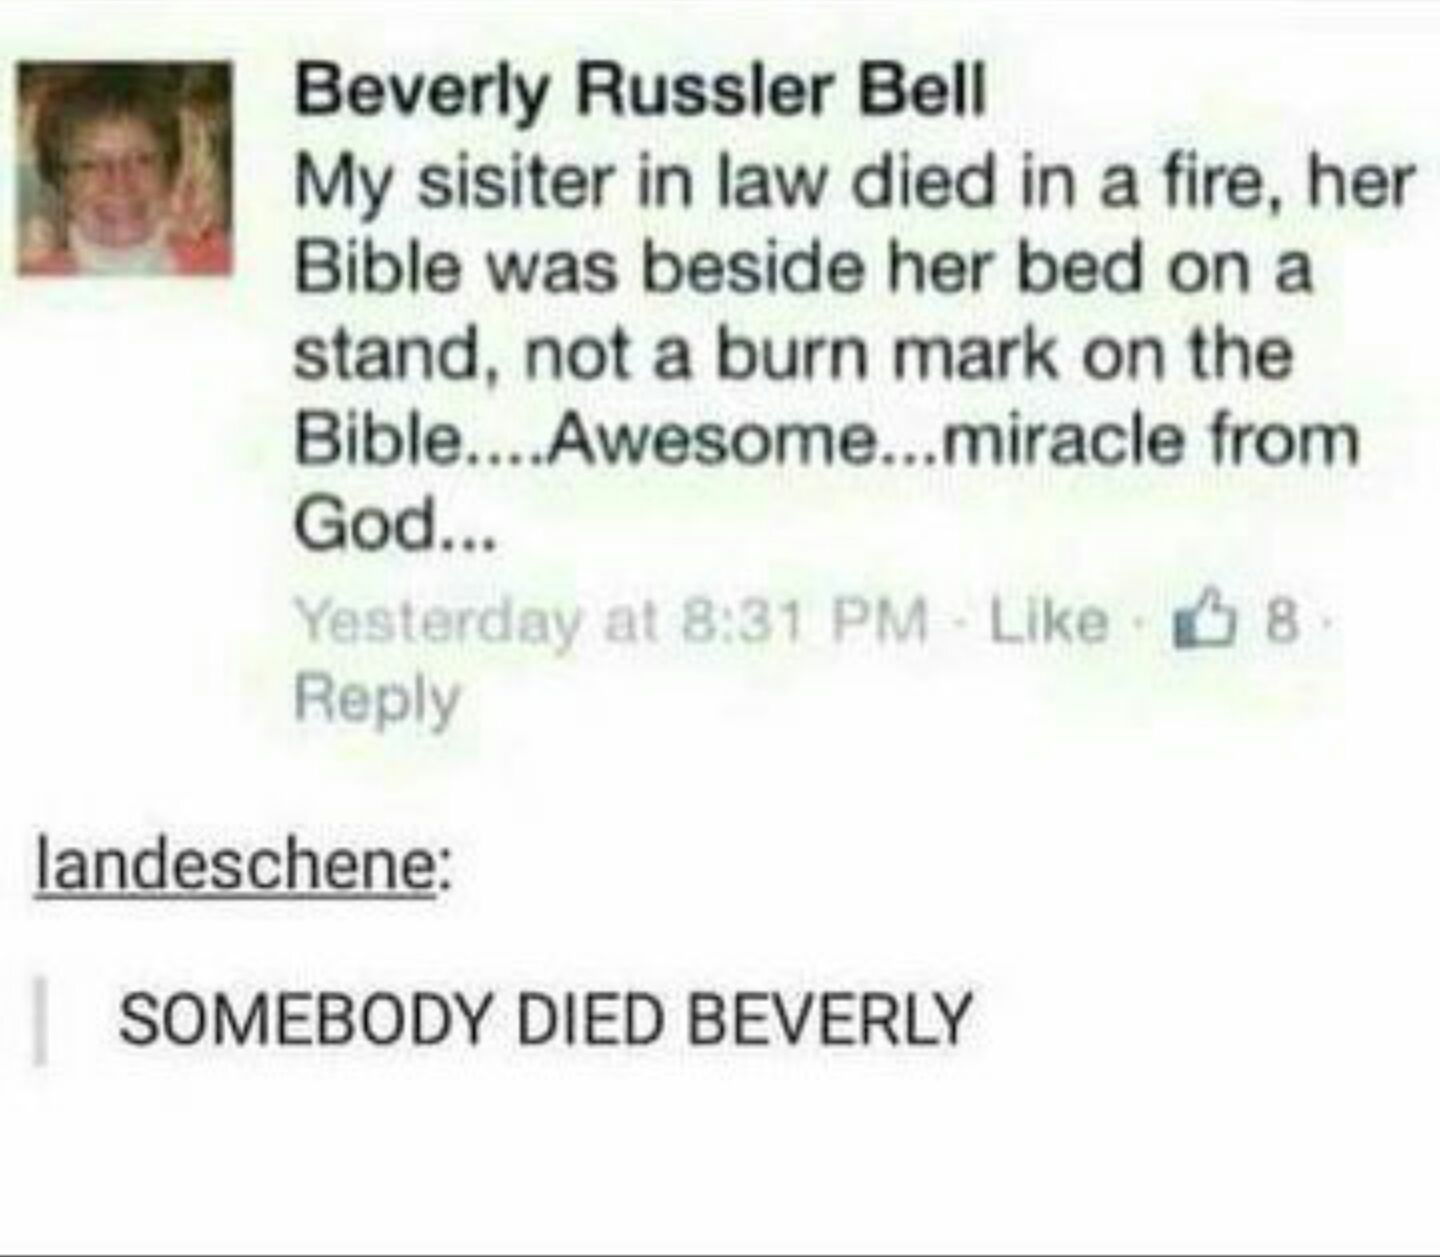 Awesome...miracle